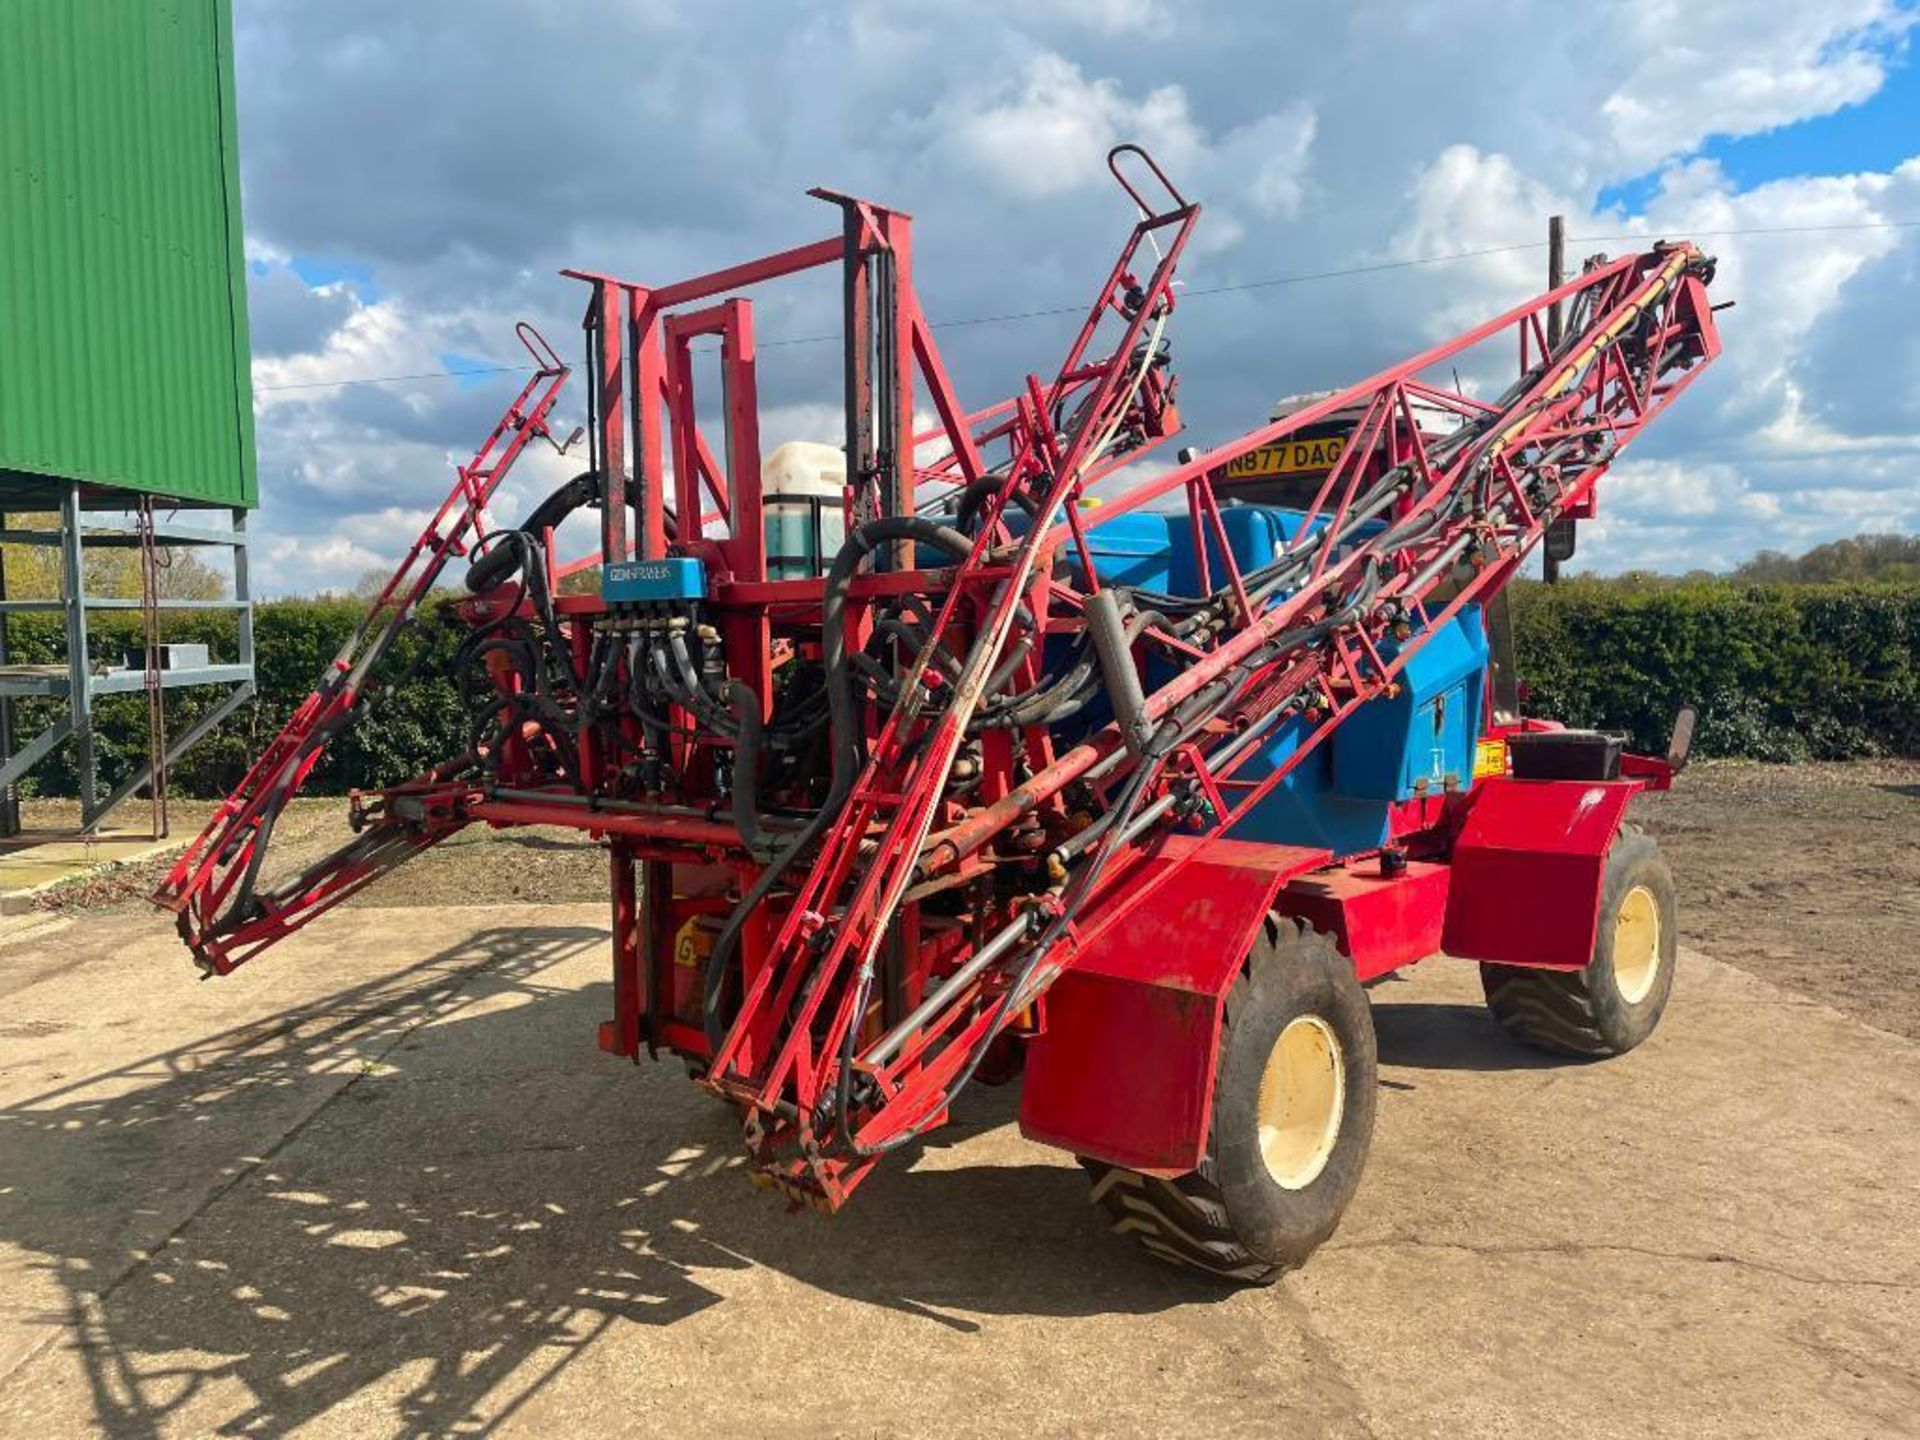 1995 Frazier Agri-Buggy SD with GEM 24m self propelled sprayer, 1500l tank on 38x20.00-16 wheels and - Image 22 of 27